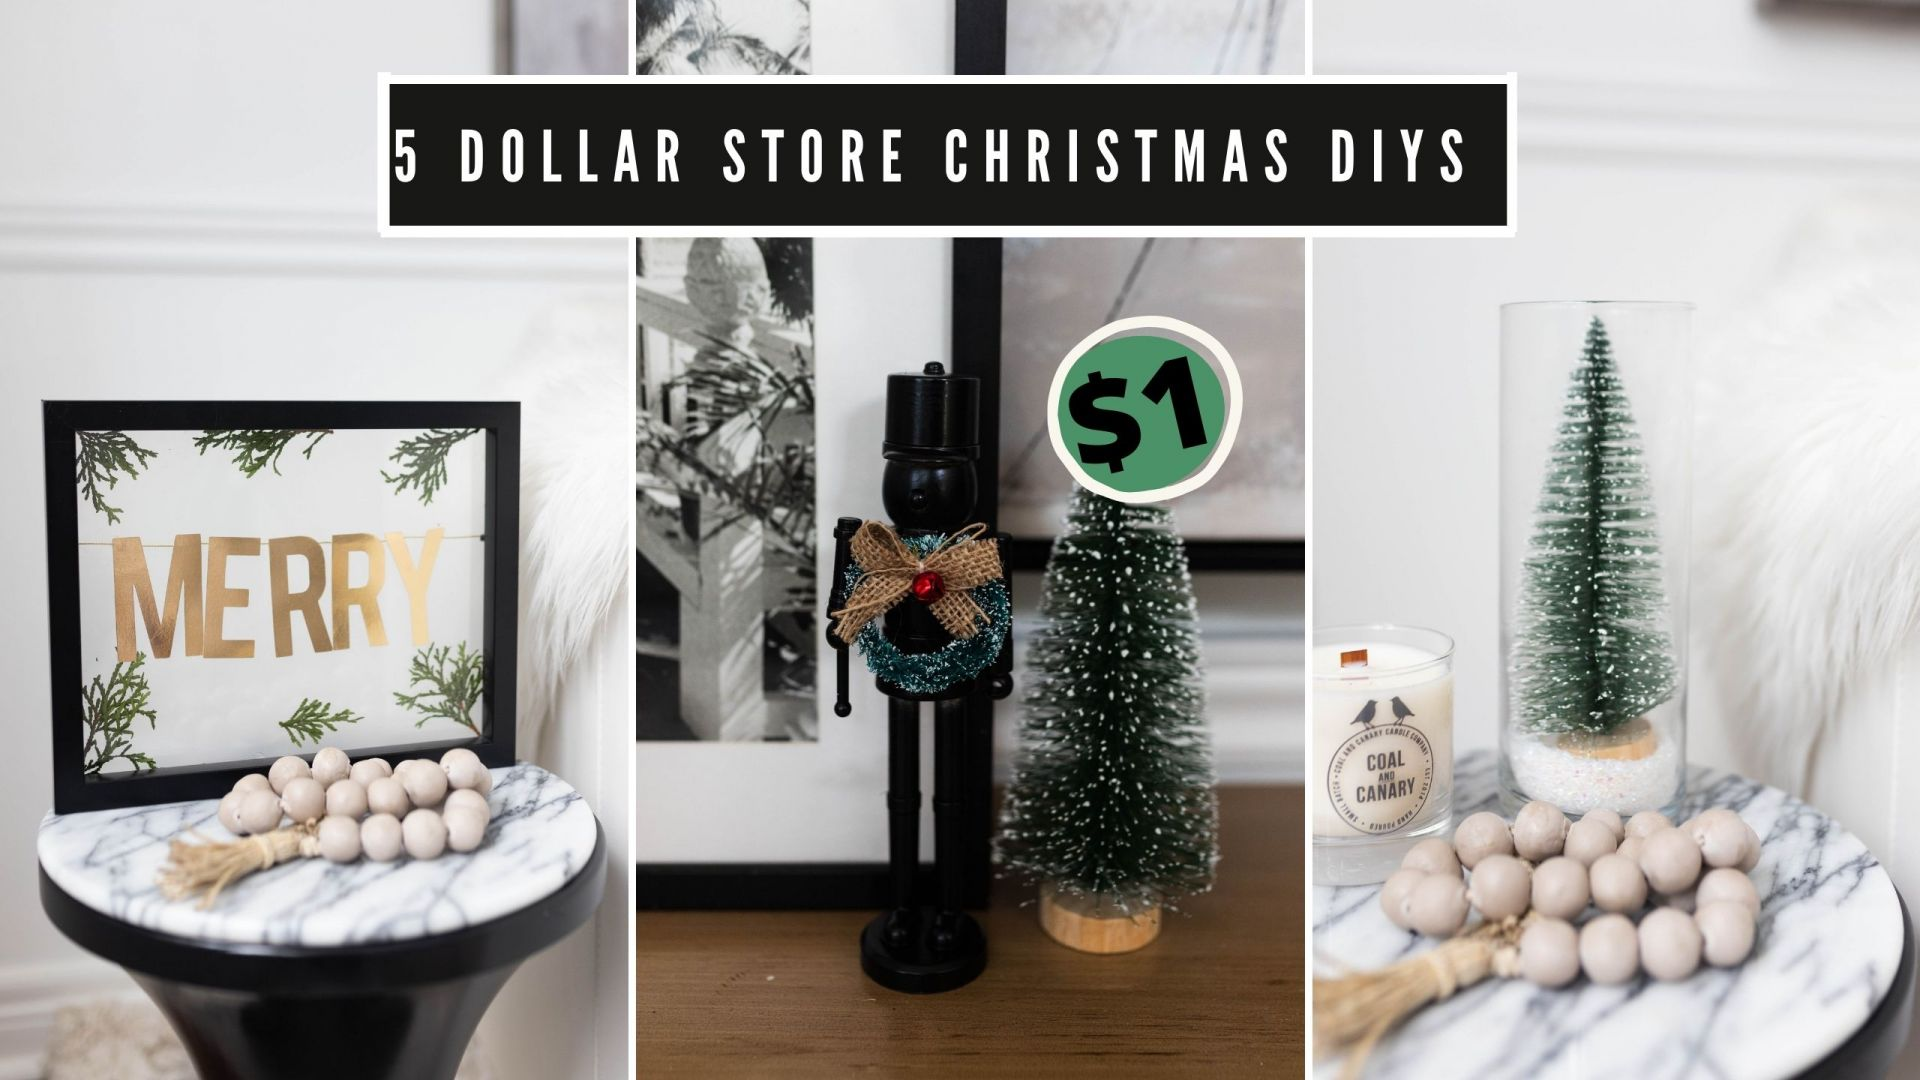 5 Modern Diy Dollar Store Christmas Decor Ideas Sincerely Miss J